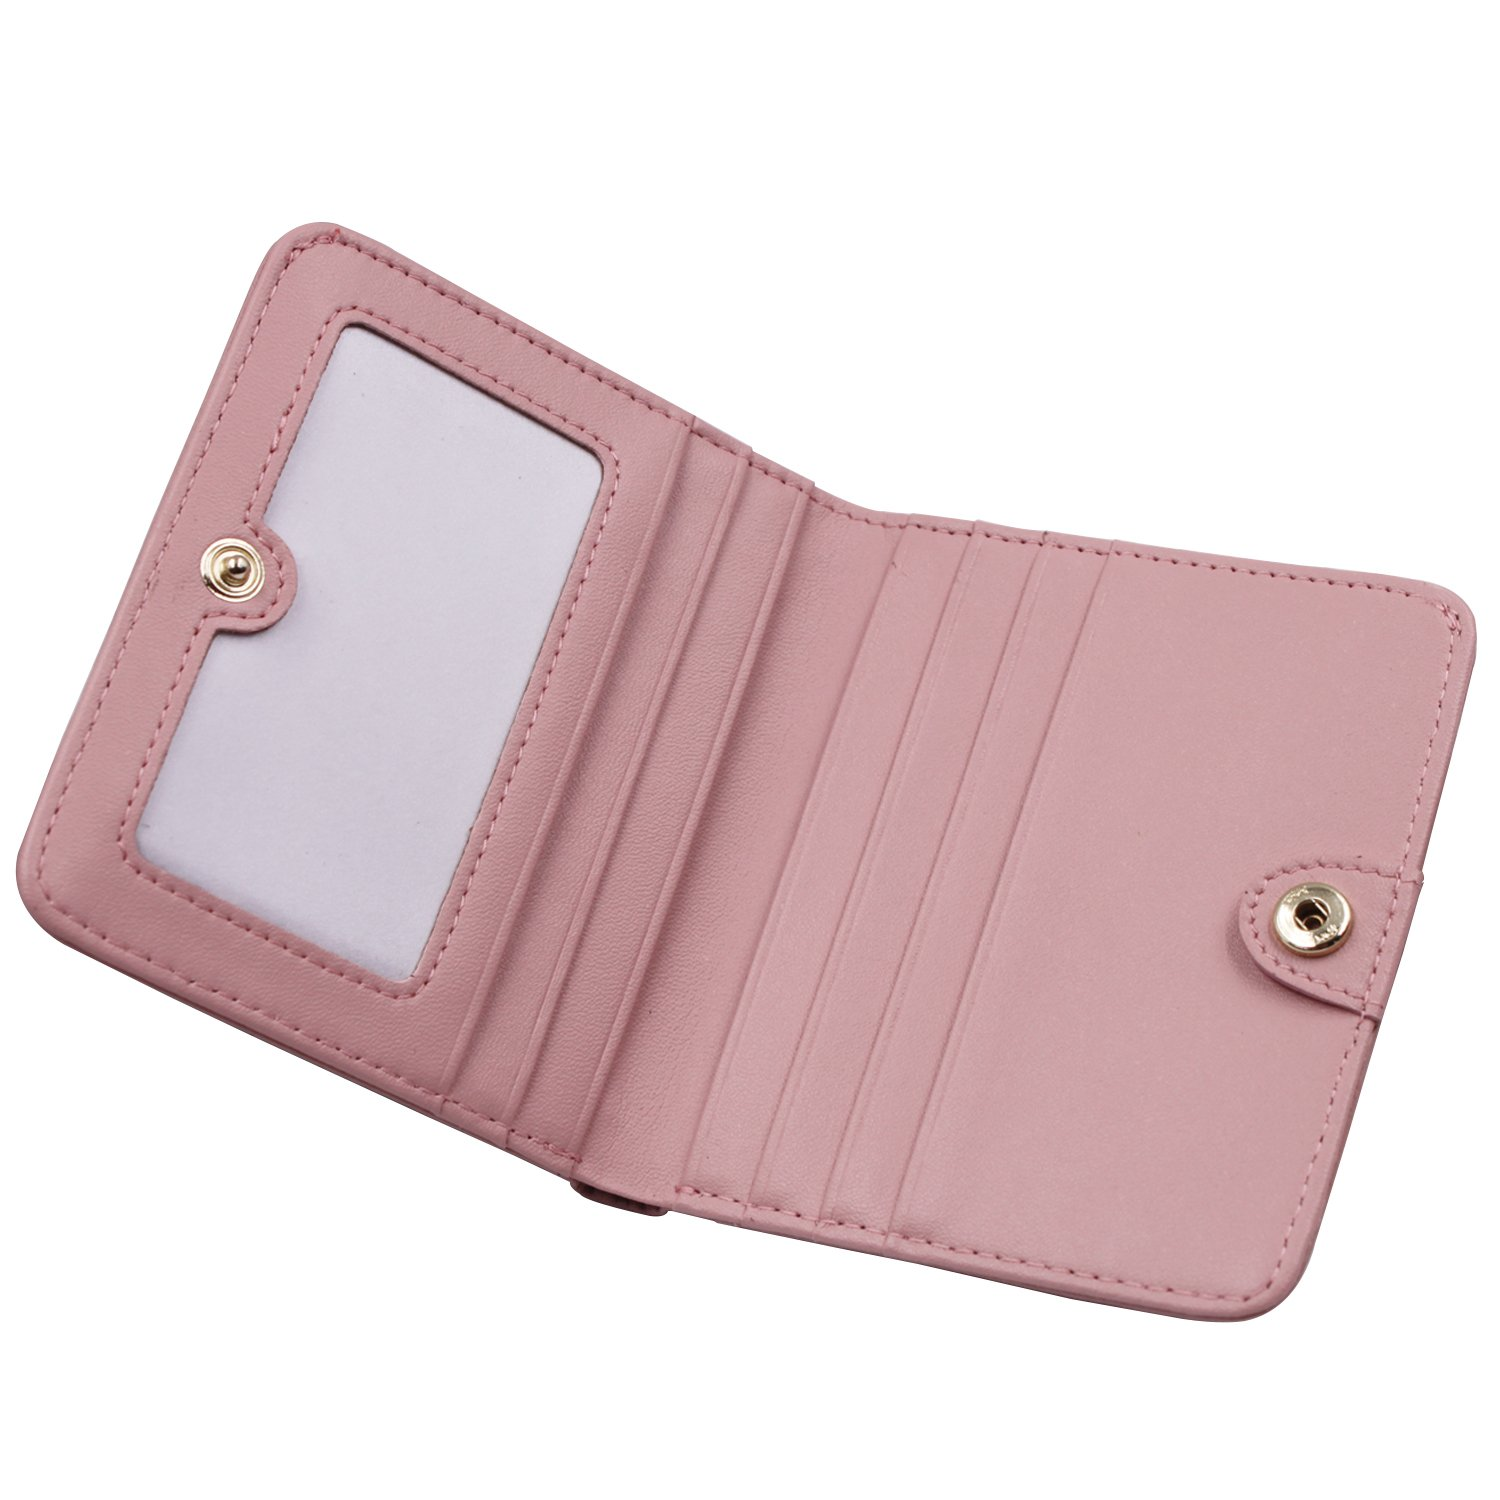 Women's Small Compact Bi-fold Leather Pocket Wallet Credit Card Holder Case with ID Card Window (New Pink) by ARRIZO (Image #4)